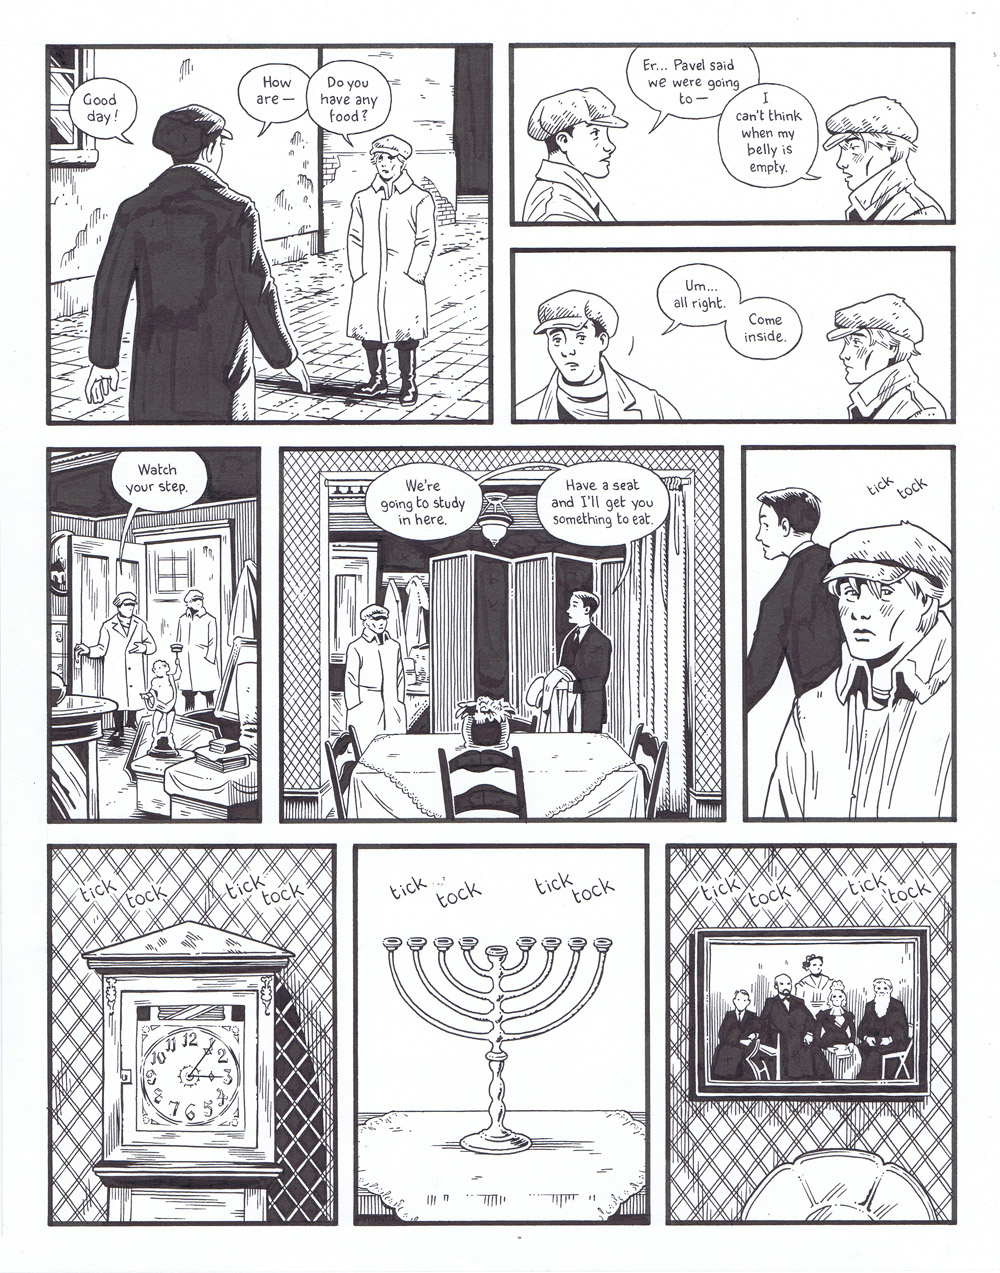 Berlin: Book 2 - page 144